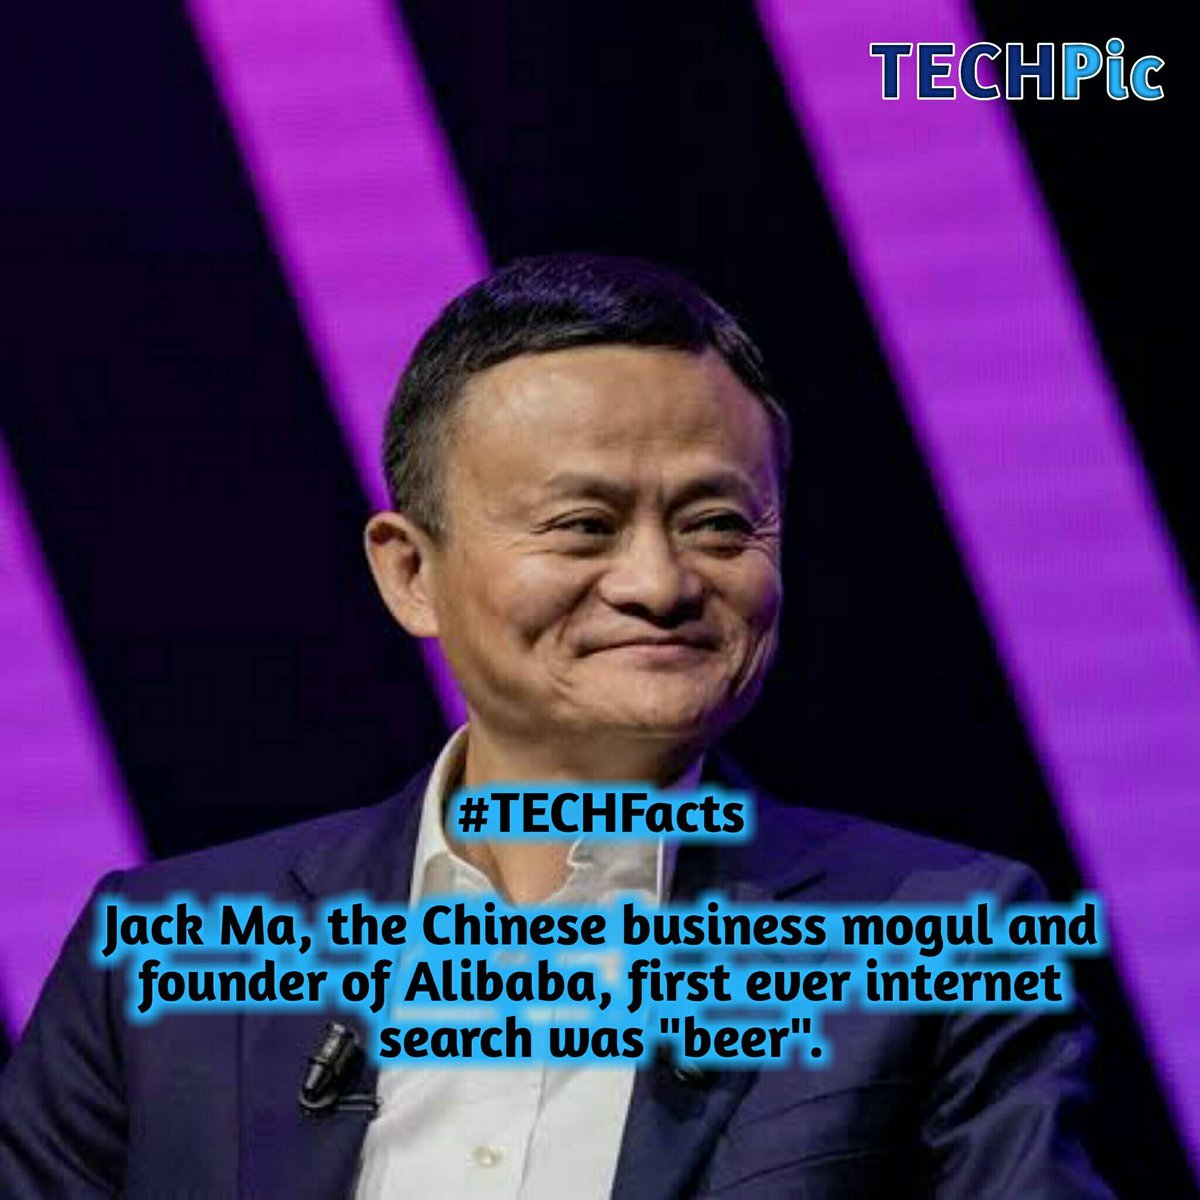 "#TECHFacts  Jack Ma, the Chinese business mogul and founder of Alibaba, first ever internet search was ""beer"". pic.twitter.com/x5VbT5R2d0"